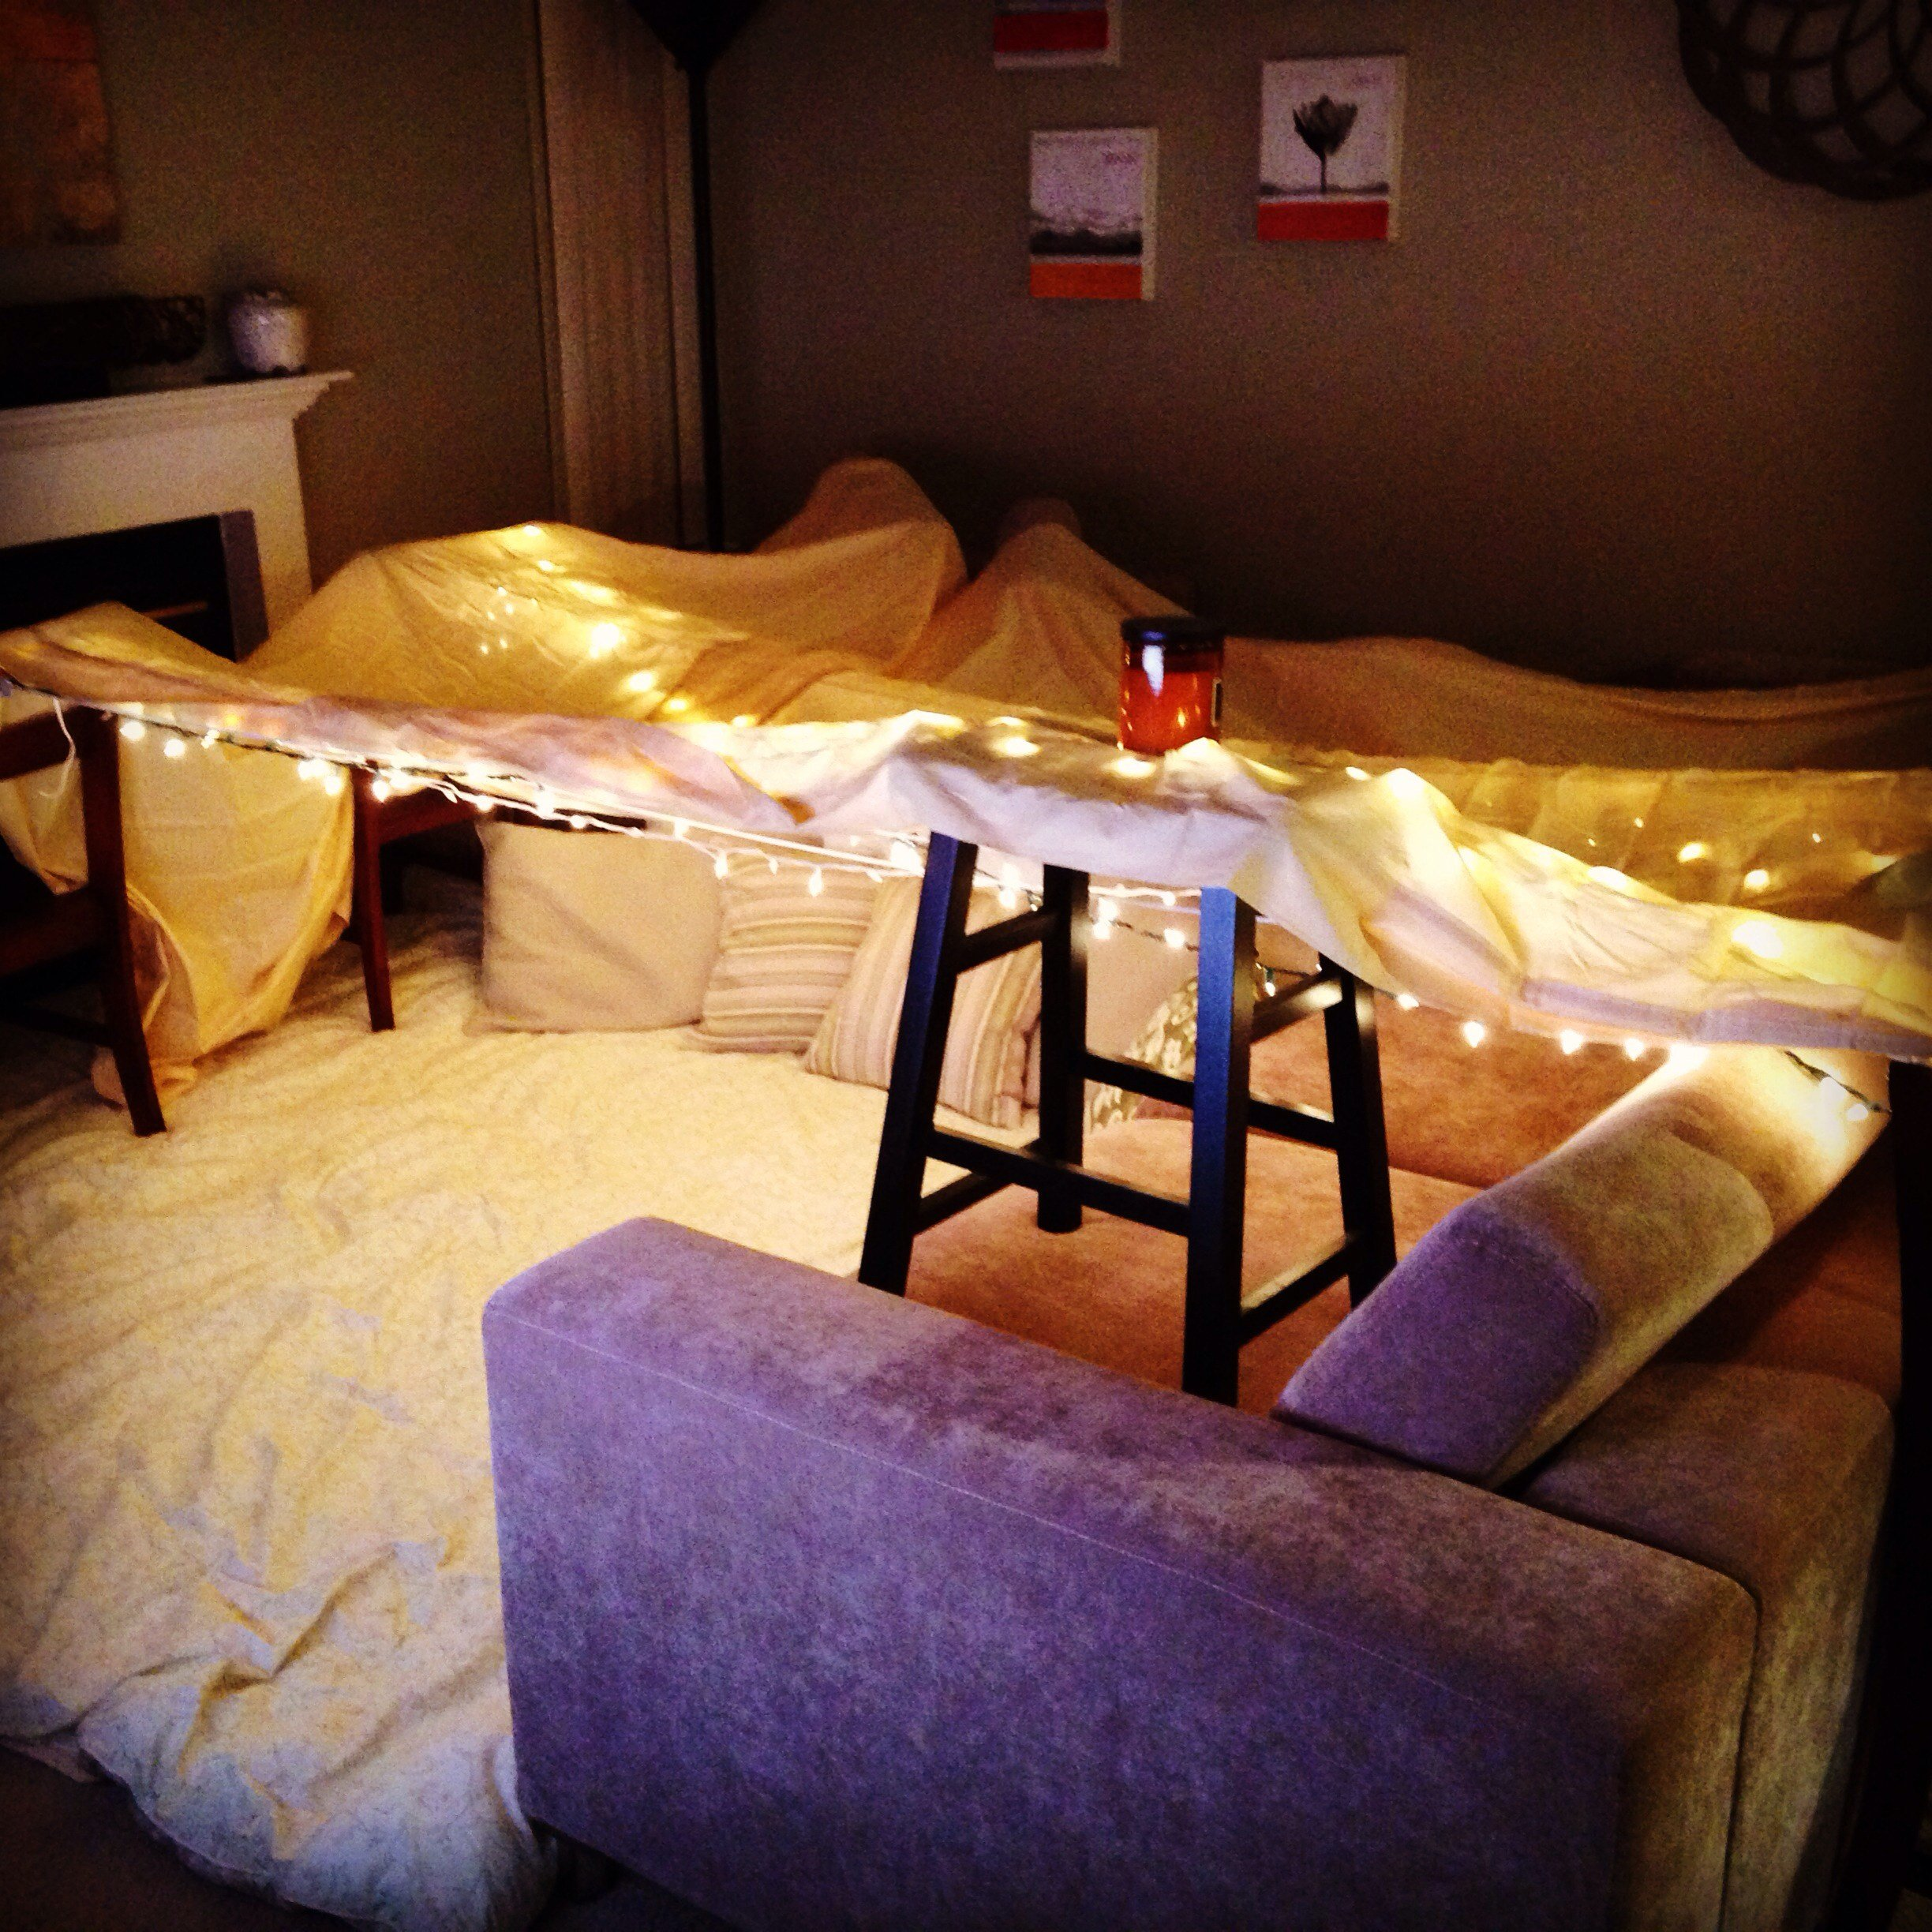 Best How To Make A Blanket Fort On Your Bed Bedroom Outdoor Kit Diy Build Step By Hotel Canning An With Pictures